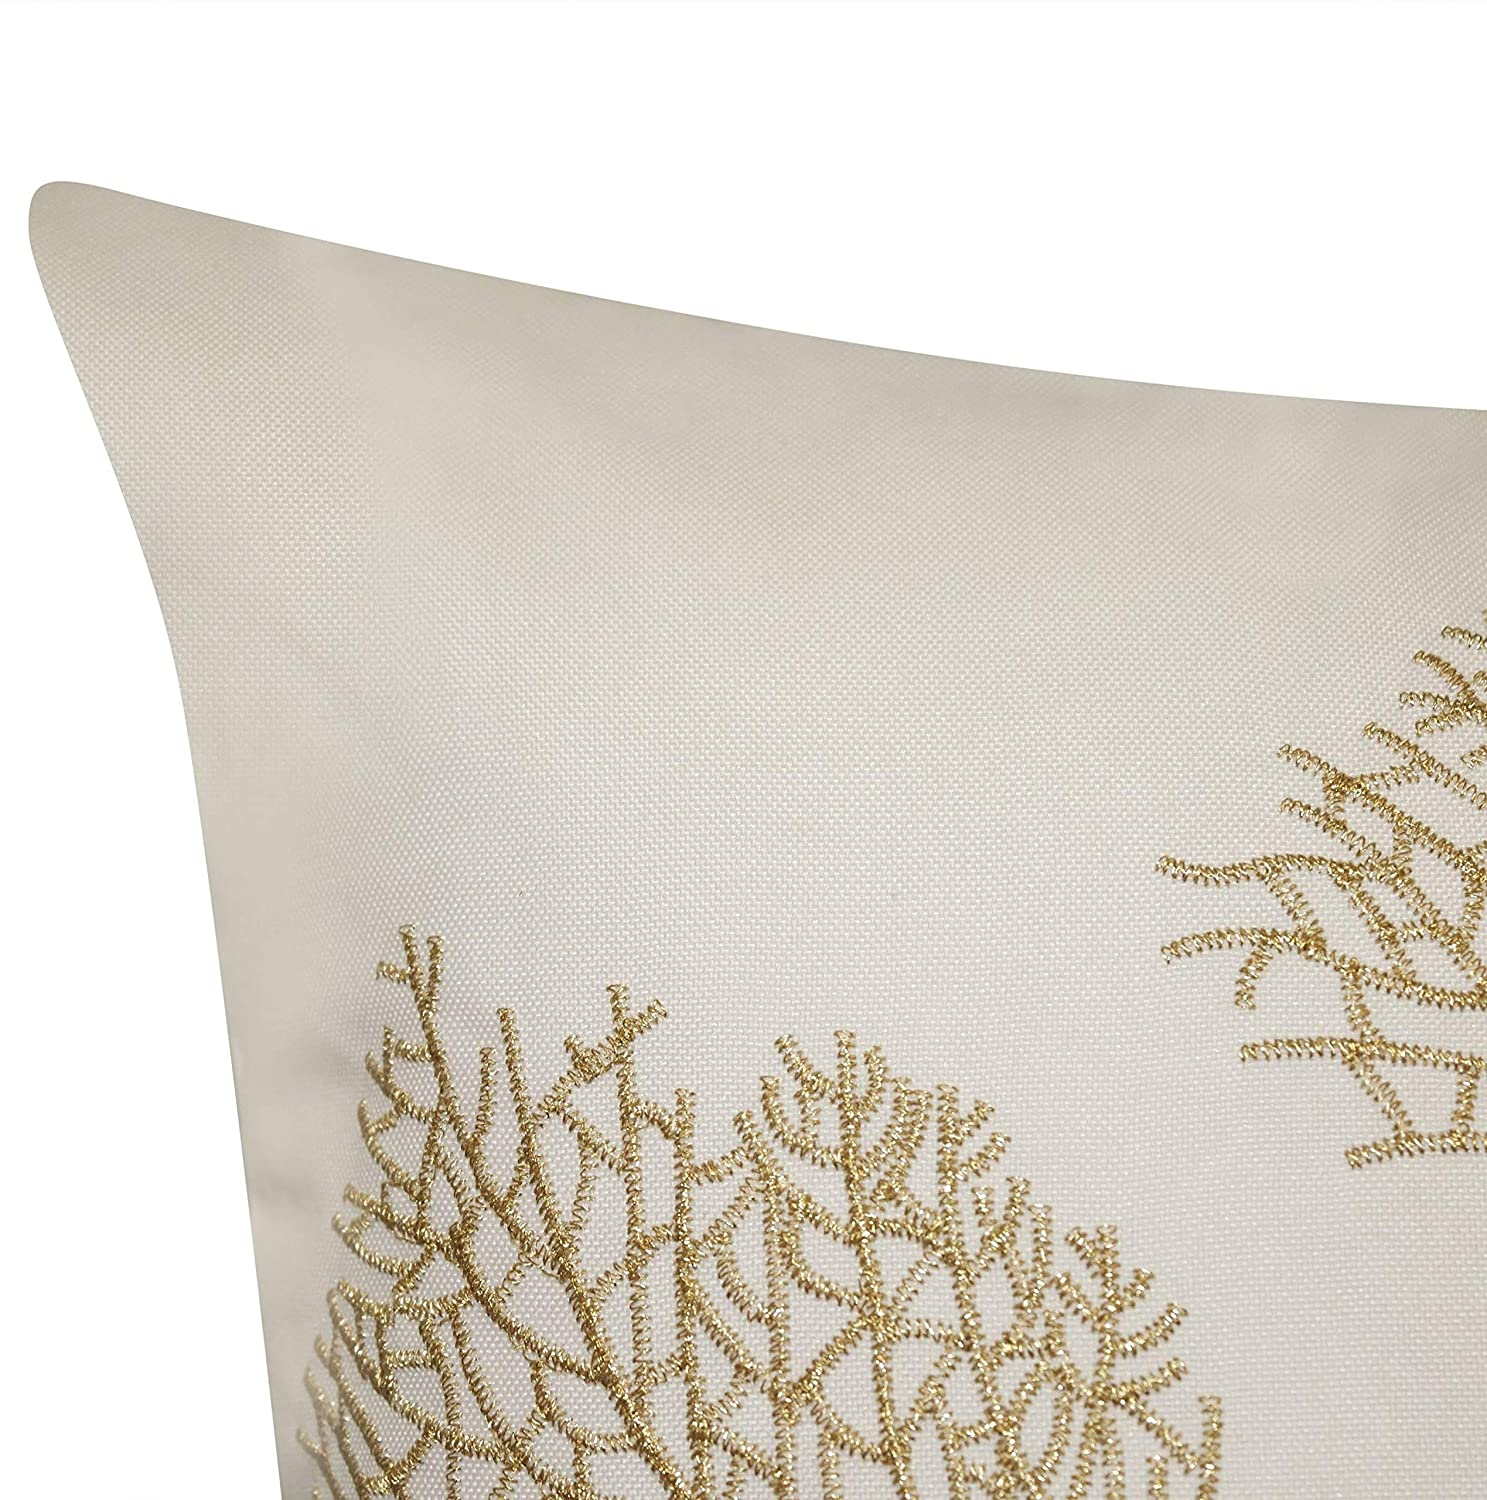 MISC Embroidered Printed Coral Outdoor Pillow Cream Nature Nautical Coastal Polyester